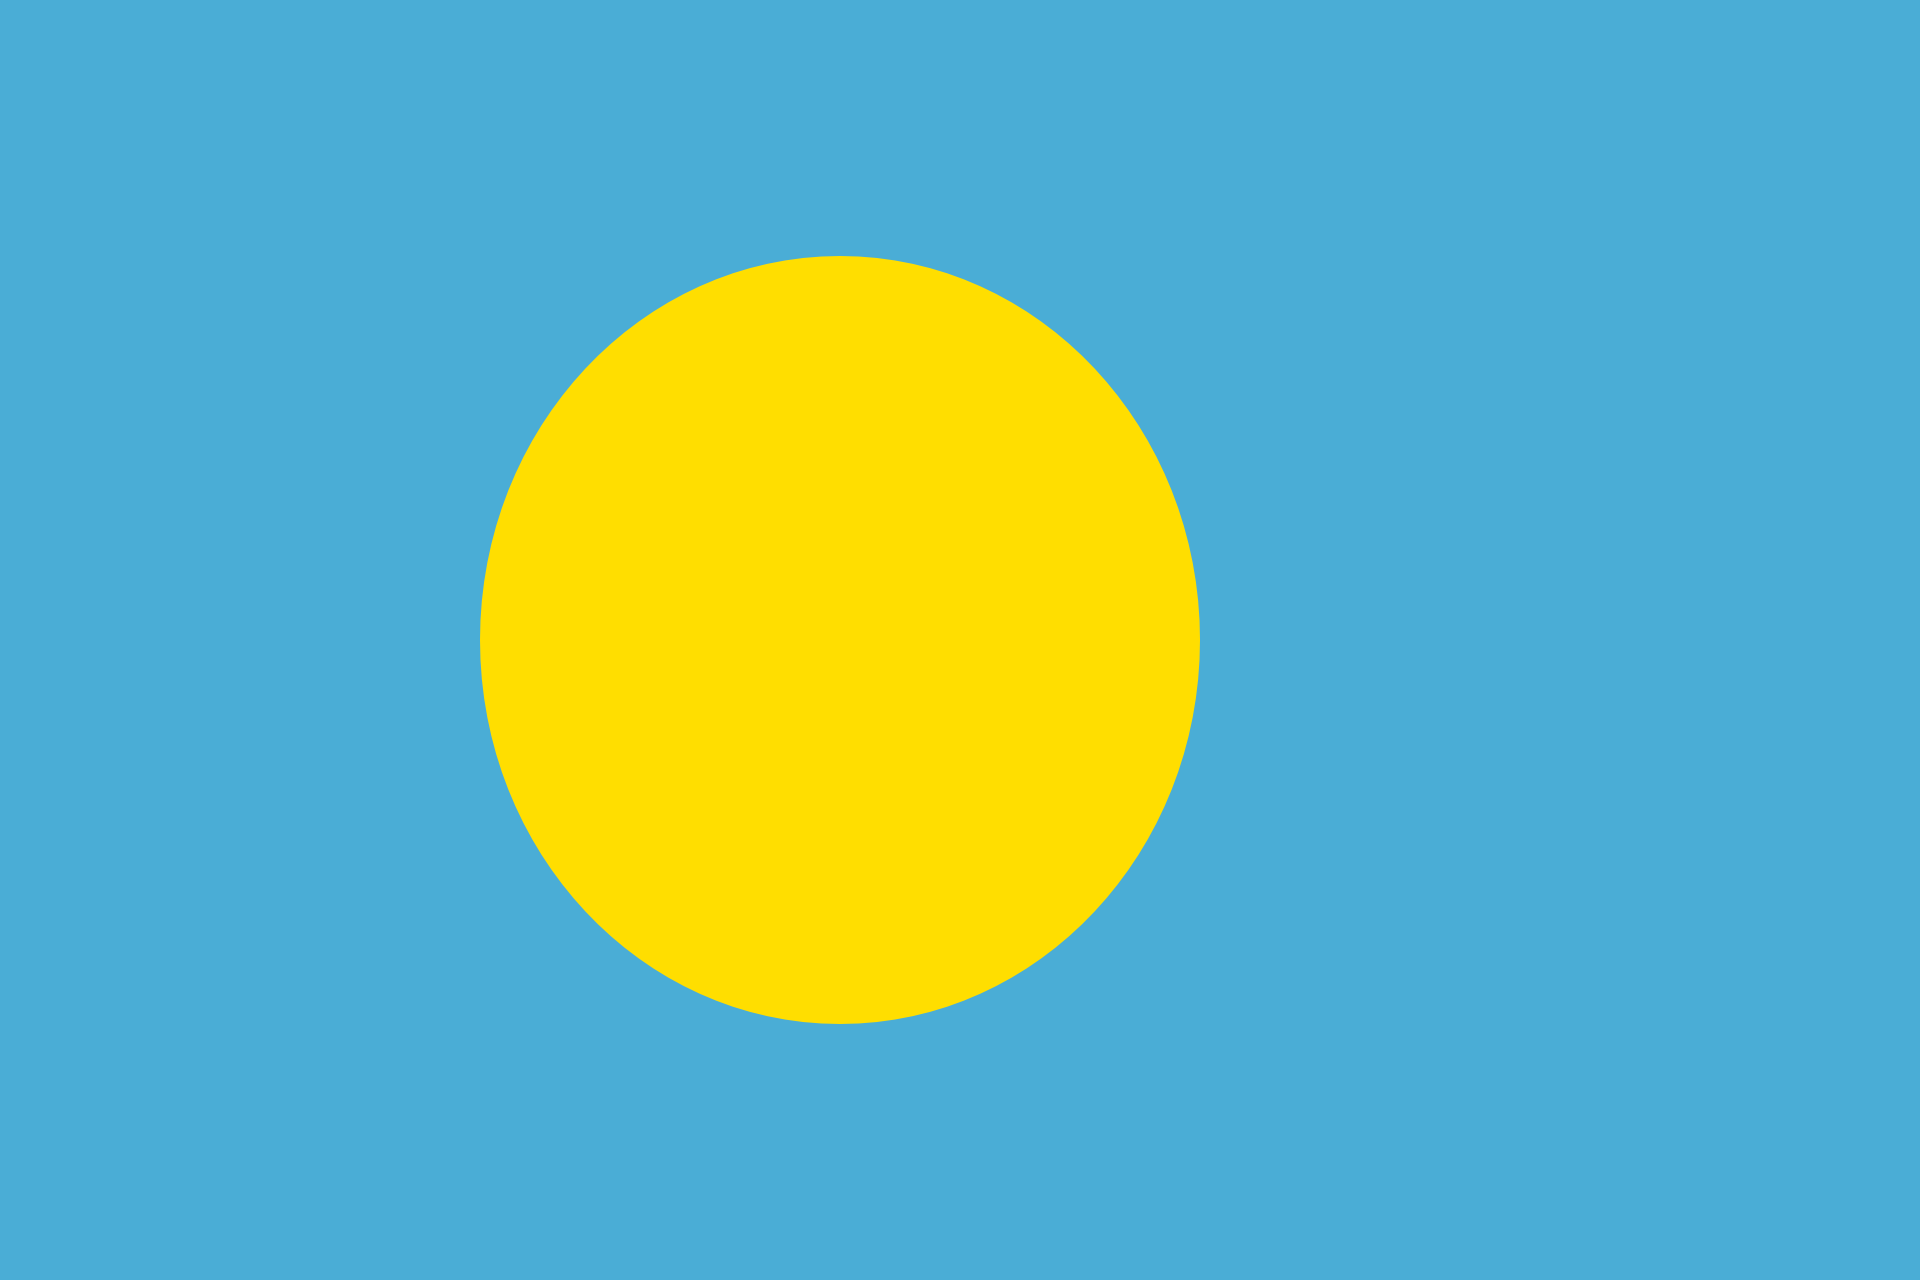 Pin By Coingebra On International Flags Pro Palau Flag Palau Flags Of The World